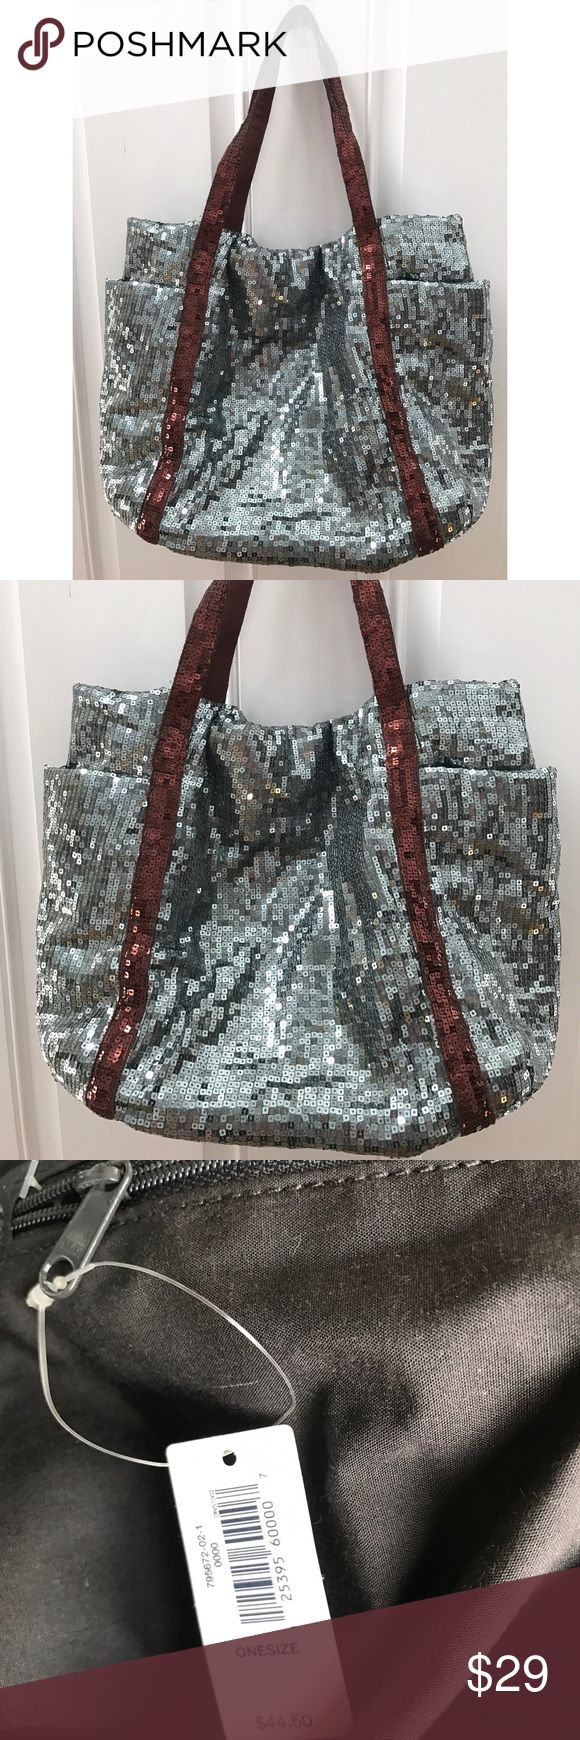 Sequin tote bag Silver sequin tote bag with brown (copper) straps. Inside  zip pocket and 2 outside pockets. New with tag- never used. GAP Bags Totes